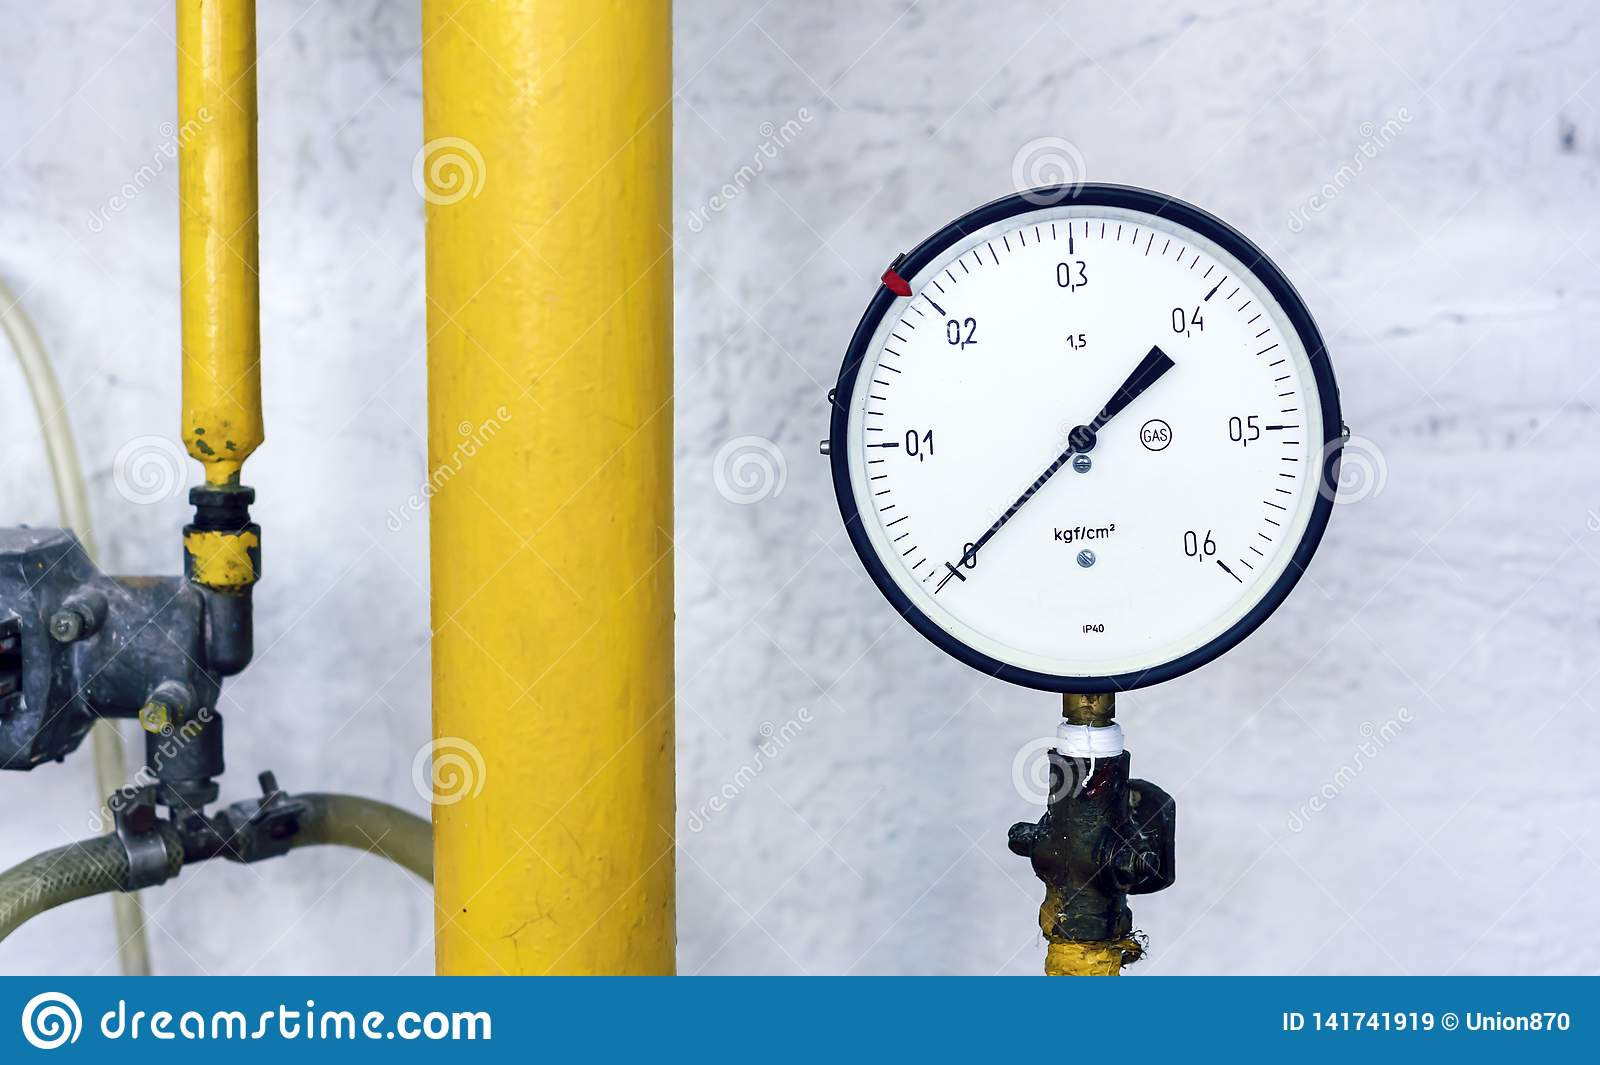 The manometer at the gas-distributing station. Instrument for measuring gas pressure